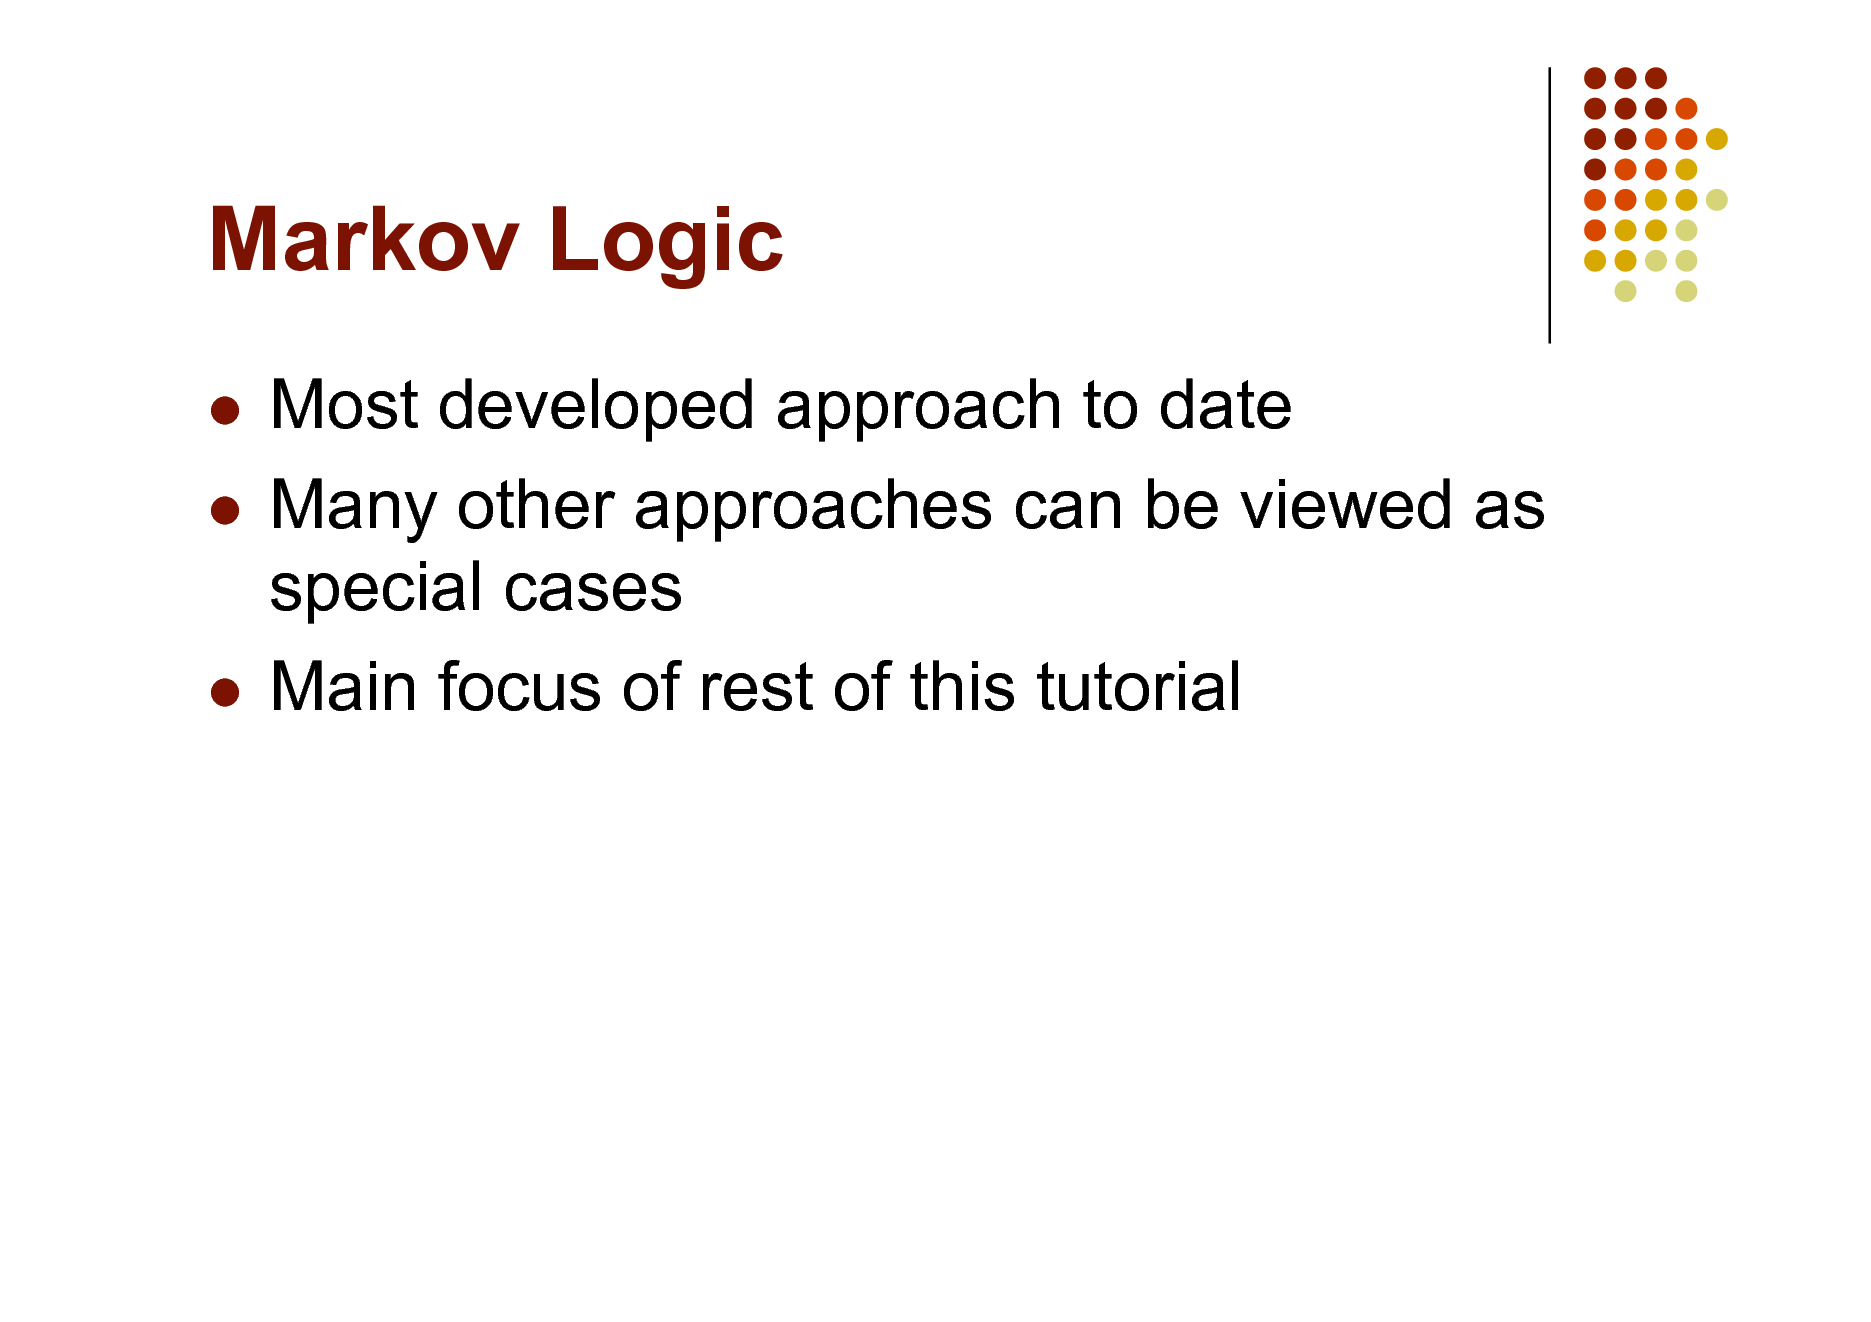 Slide: Markov Logic Most developed approach to date  Many other approaches can be viewed as special cases  Main focus of rest of this tutorial